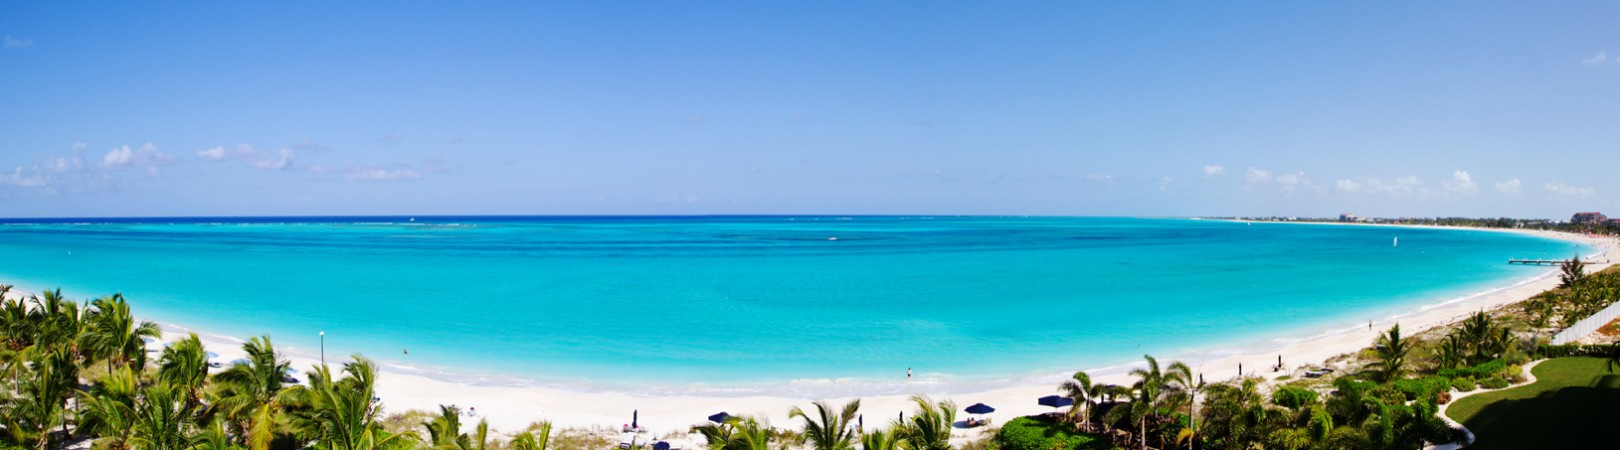 turks-and-caicos-best-price_Header